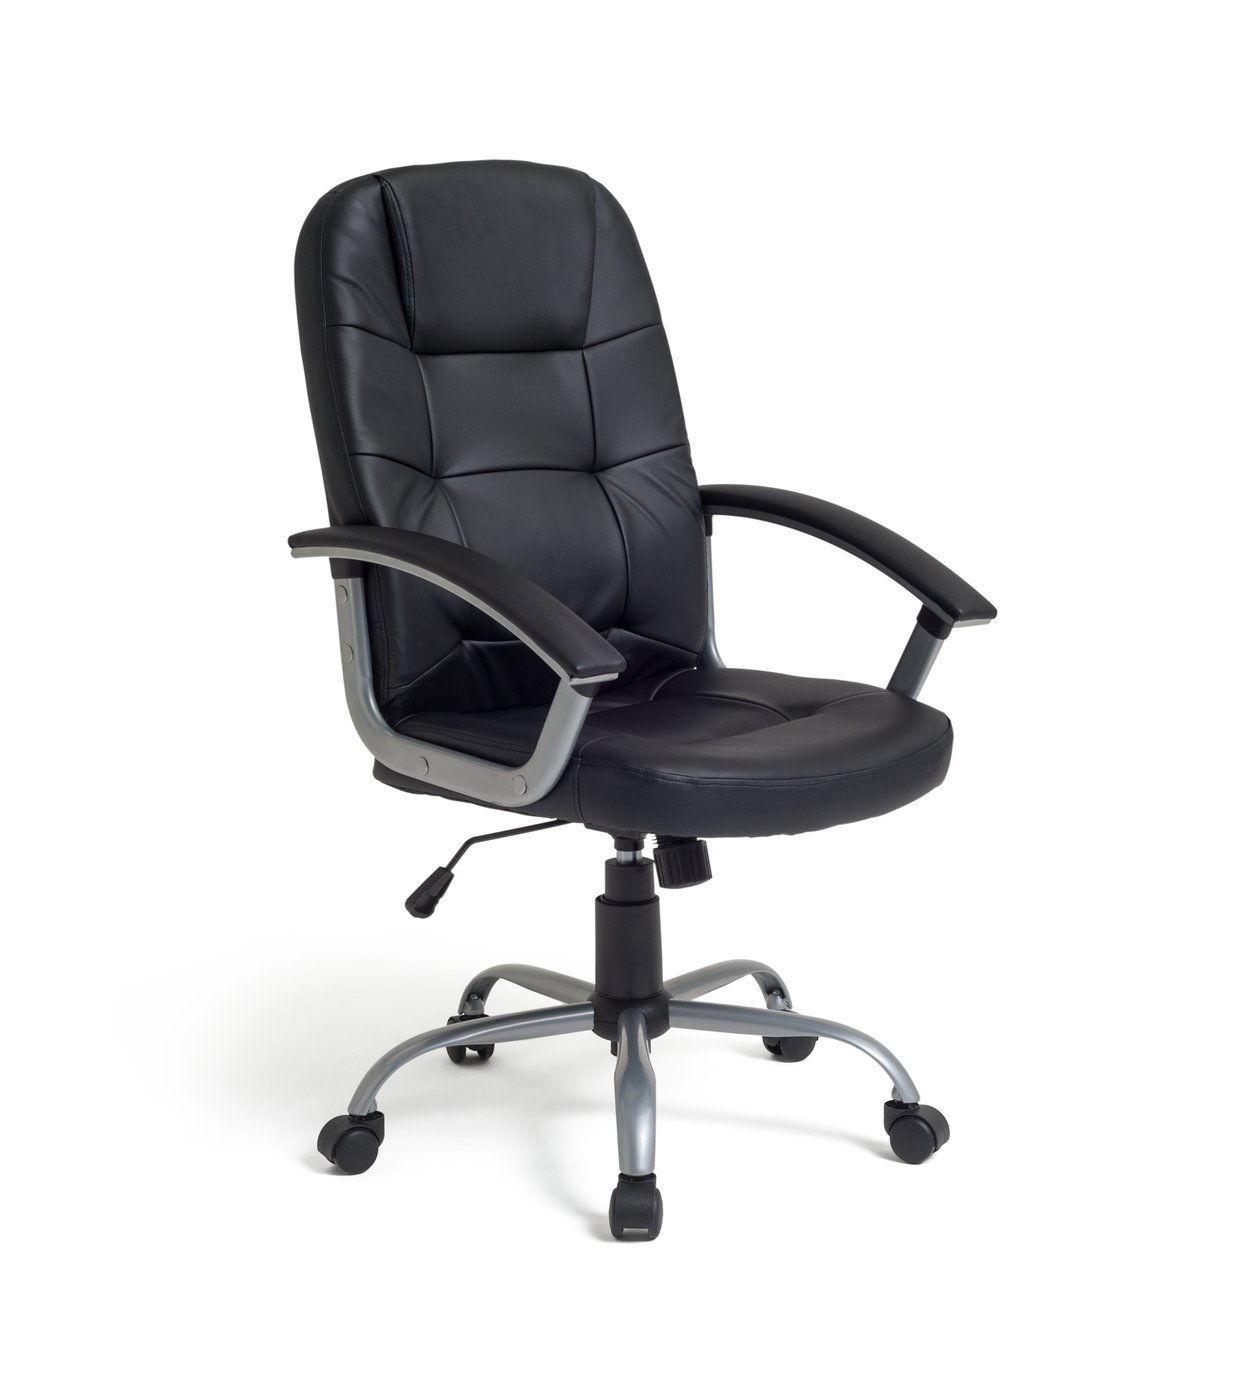 Buy Walker Height Adjustable Office Chair   Black At Argos.co.uk   Your  Online Shop For Office Chairs, Office Furniture, Home And Garden.